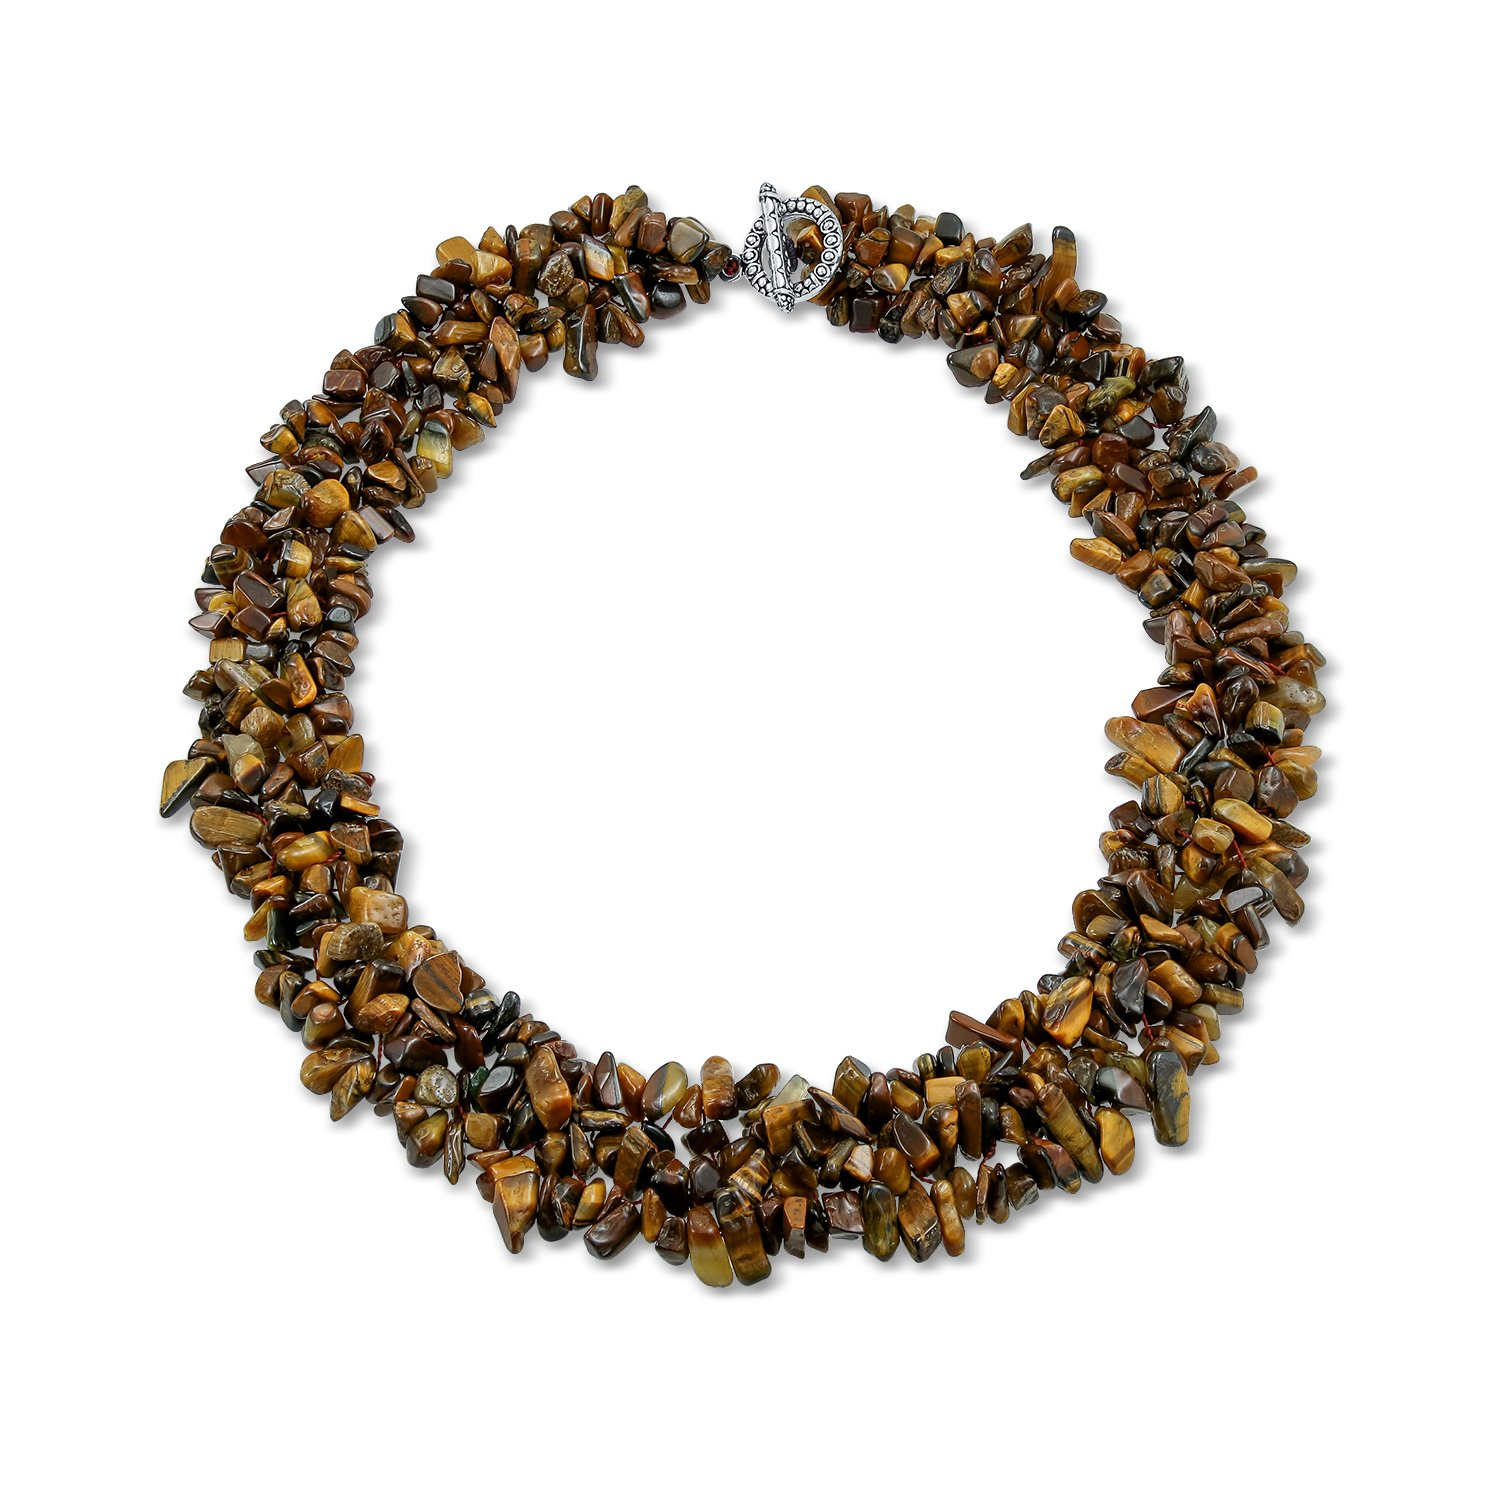 Multi Strands Simulated Tiger Eye Chips Chunky Silver Plated Necklace 18 Inches